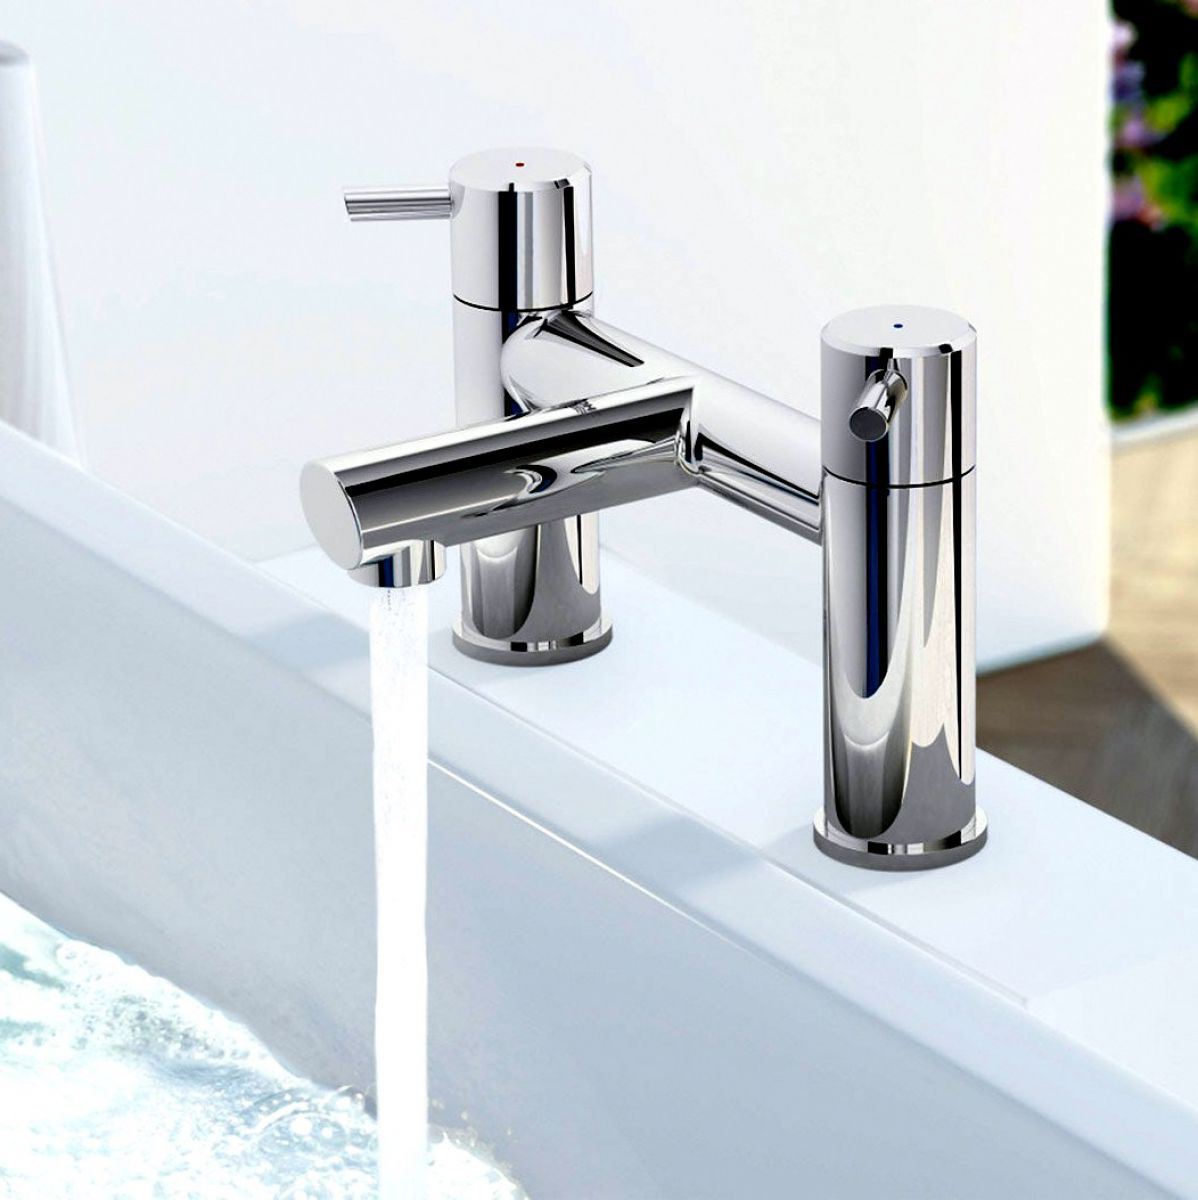 picture of a bath mixer tap